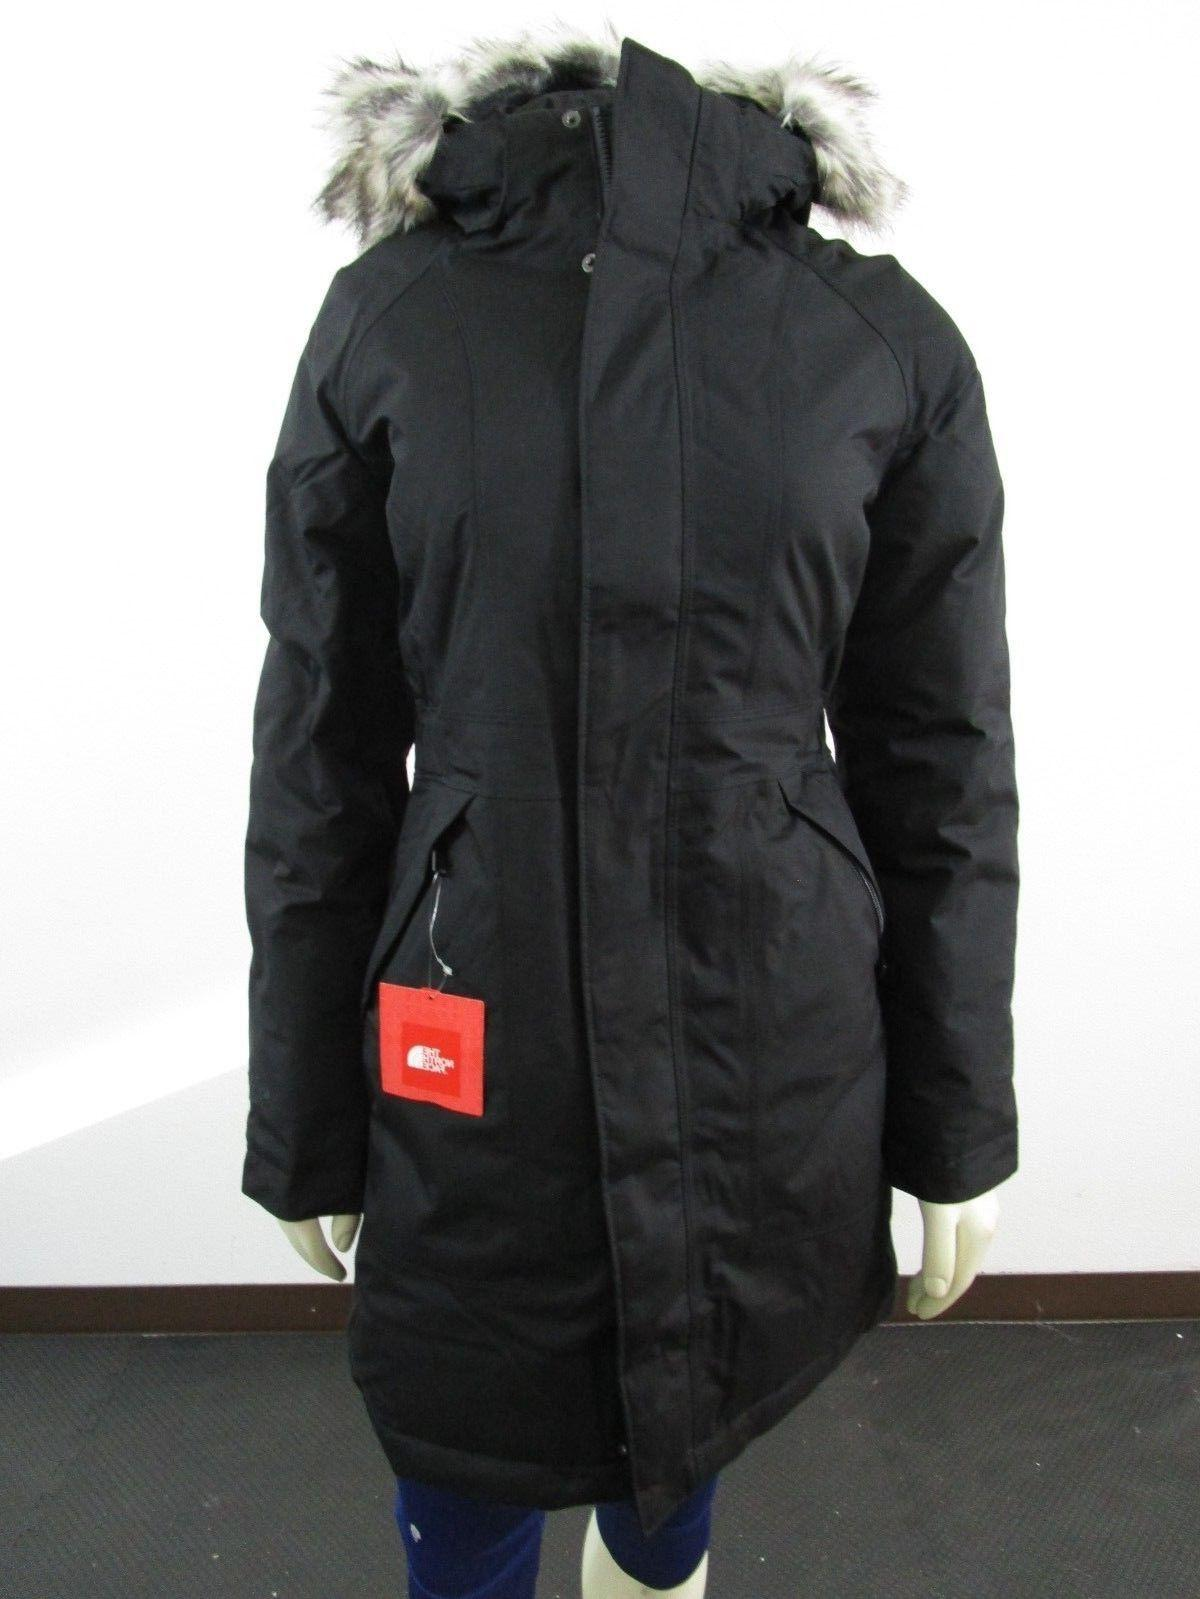 NWT Womens The North Face TNF Arctic Down Parka Warm Winter